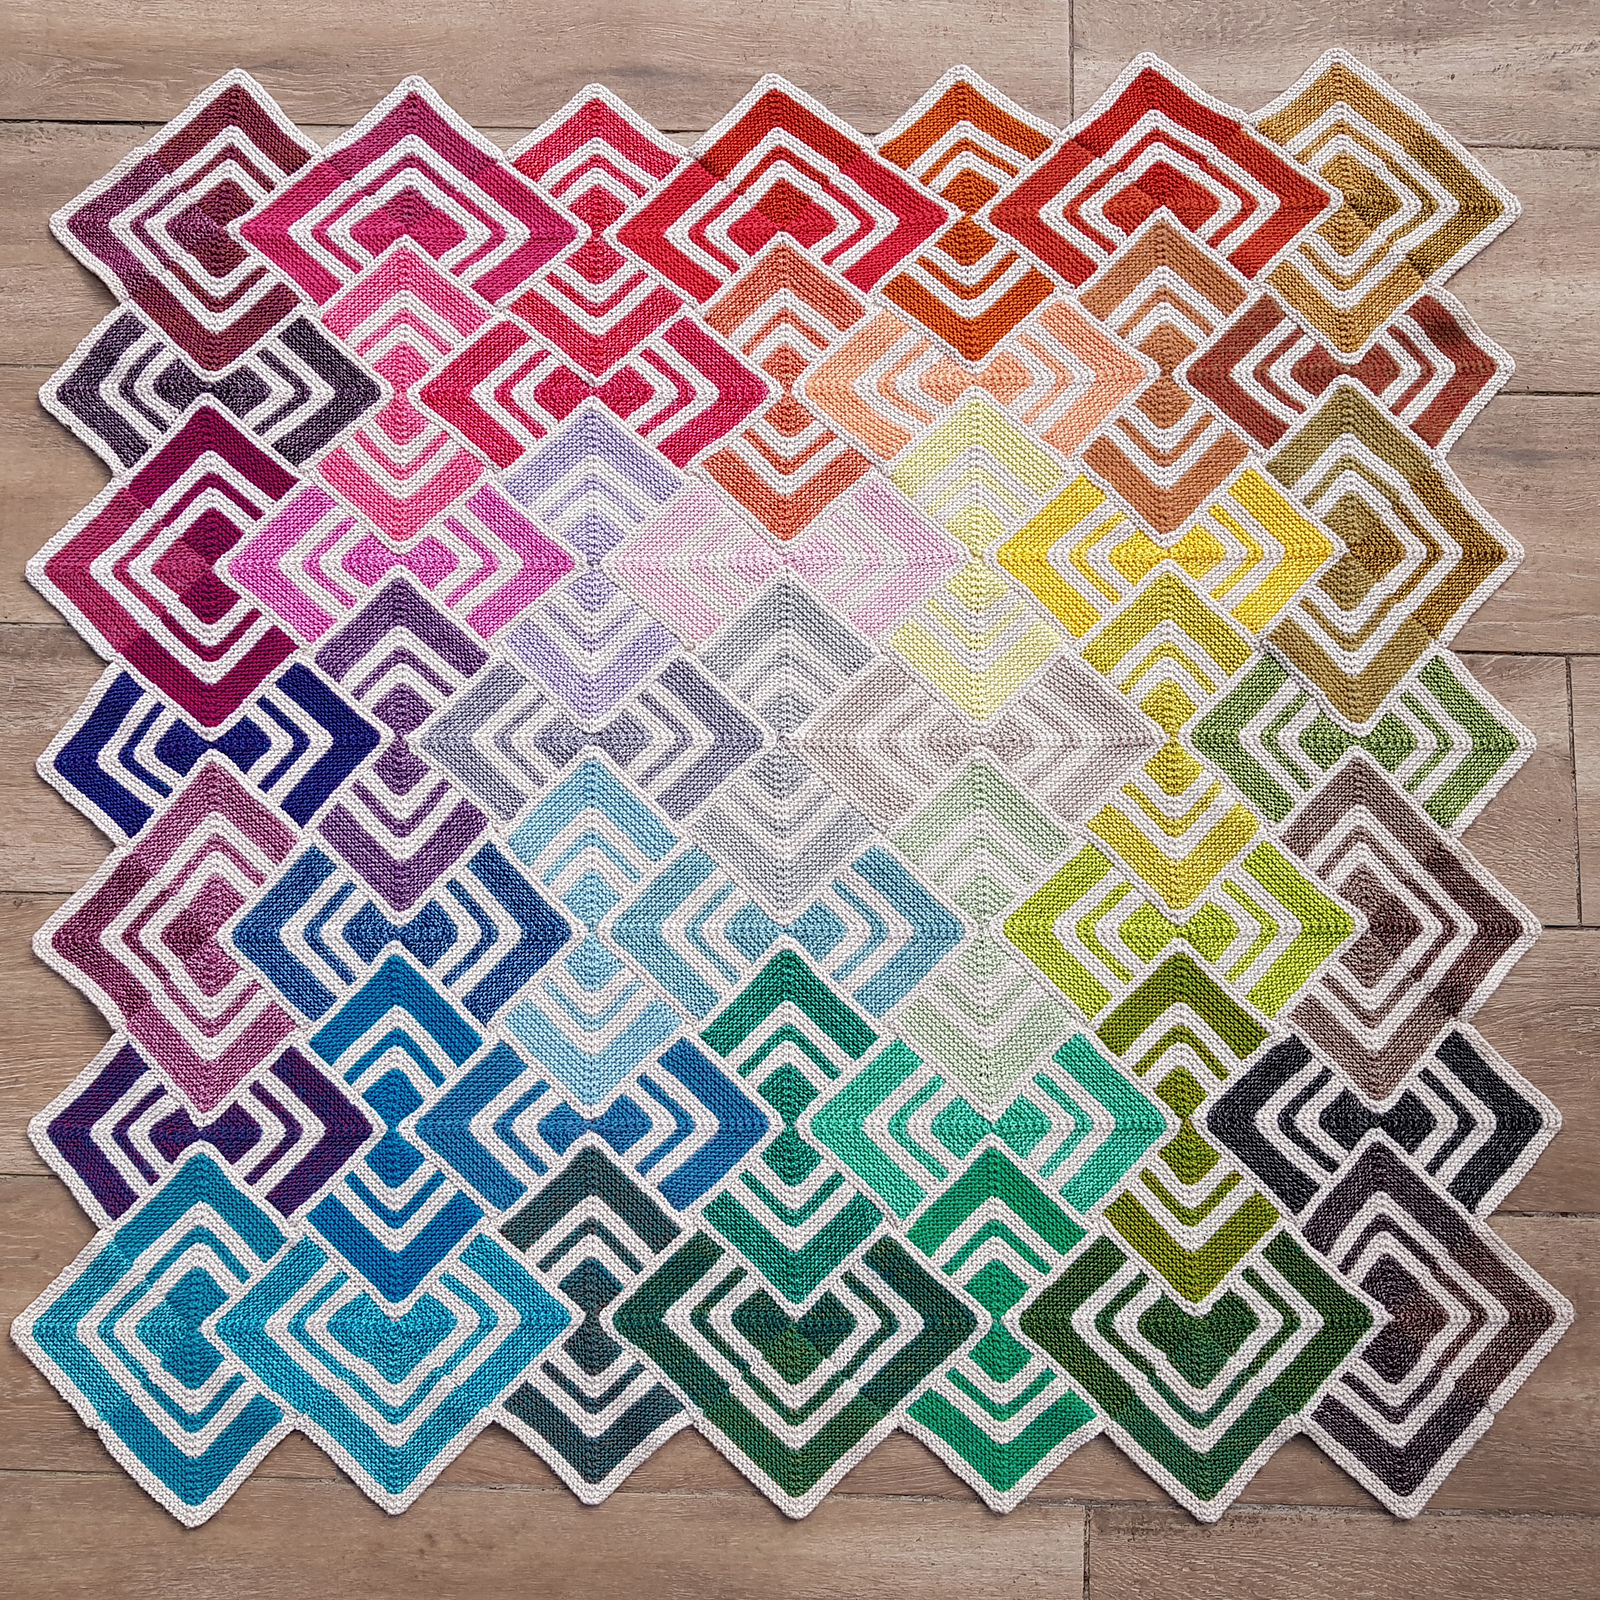 Your Next Project Is Here: Knit an Epic Sliding Tiles Afghan, Designed By Tammy Canavan-Soldaat